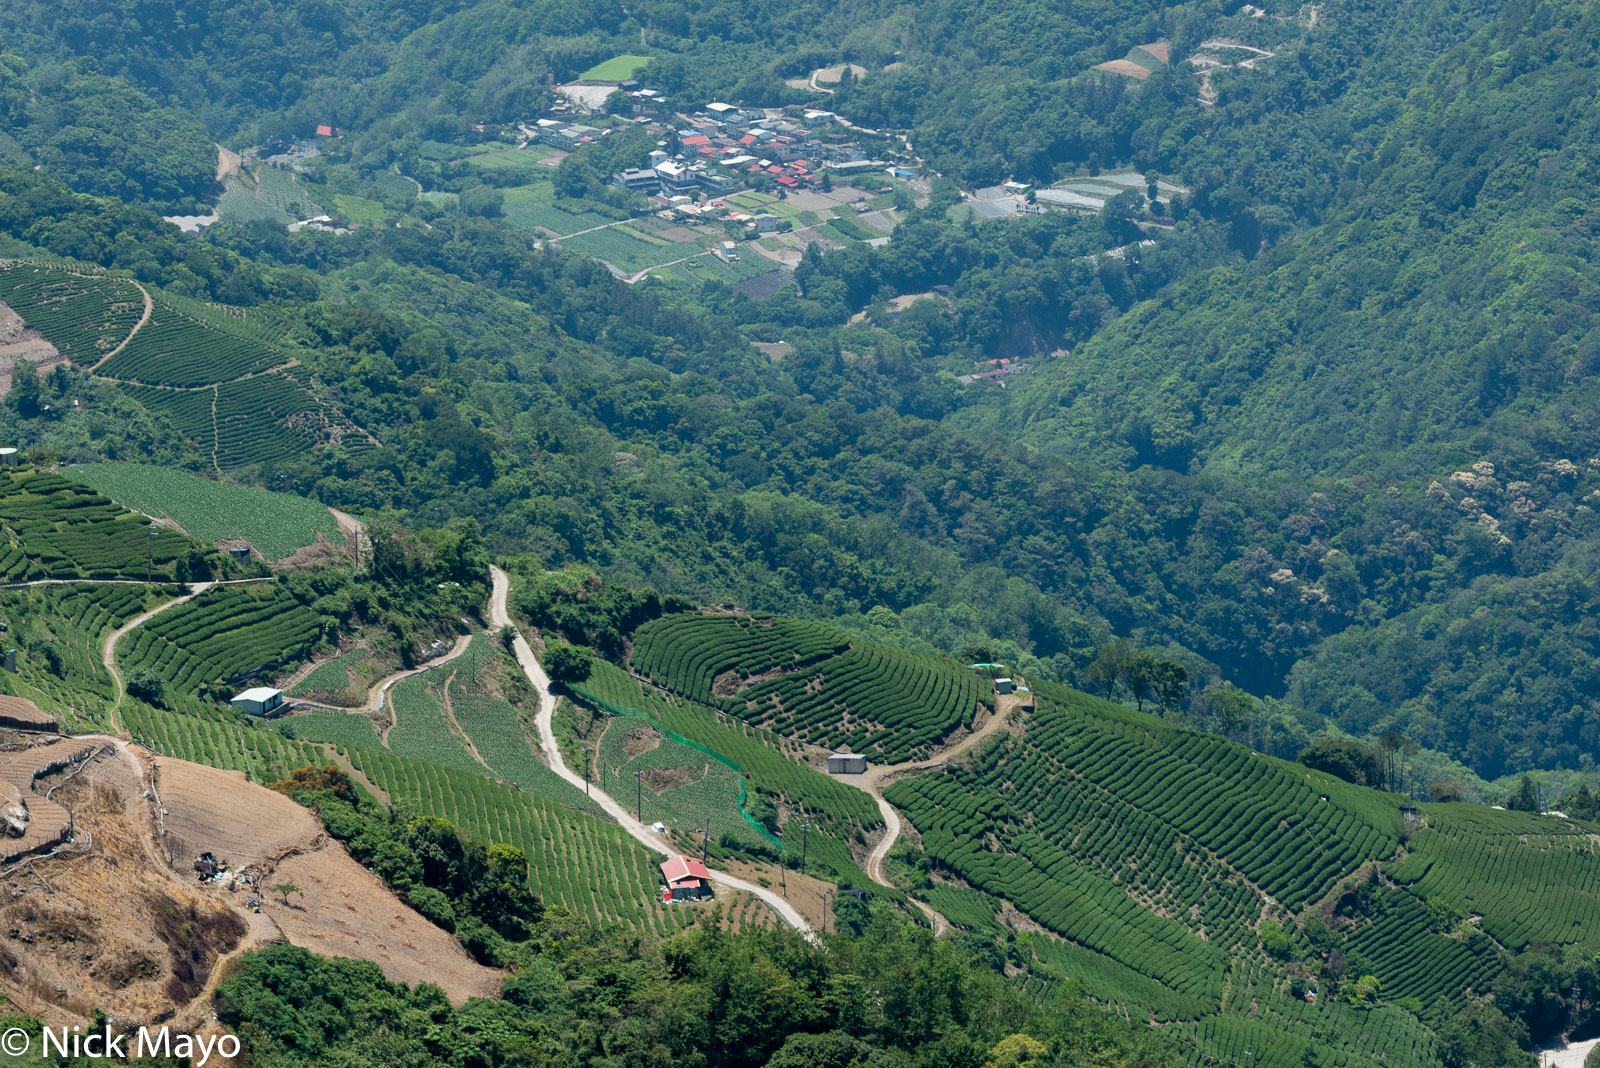 High altitude vegetable and tea fields above Cuilan village as viewed from Maliguan.